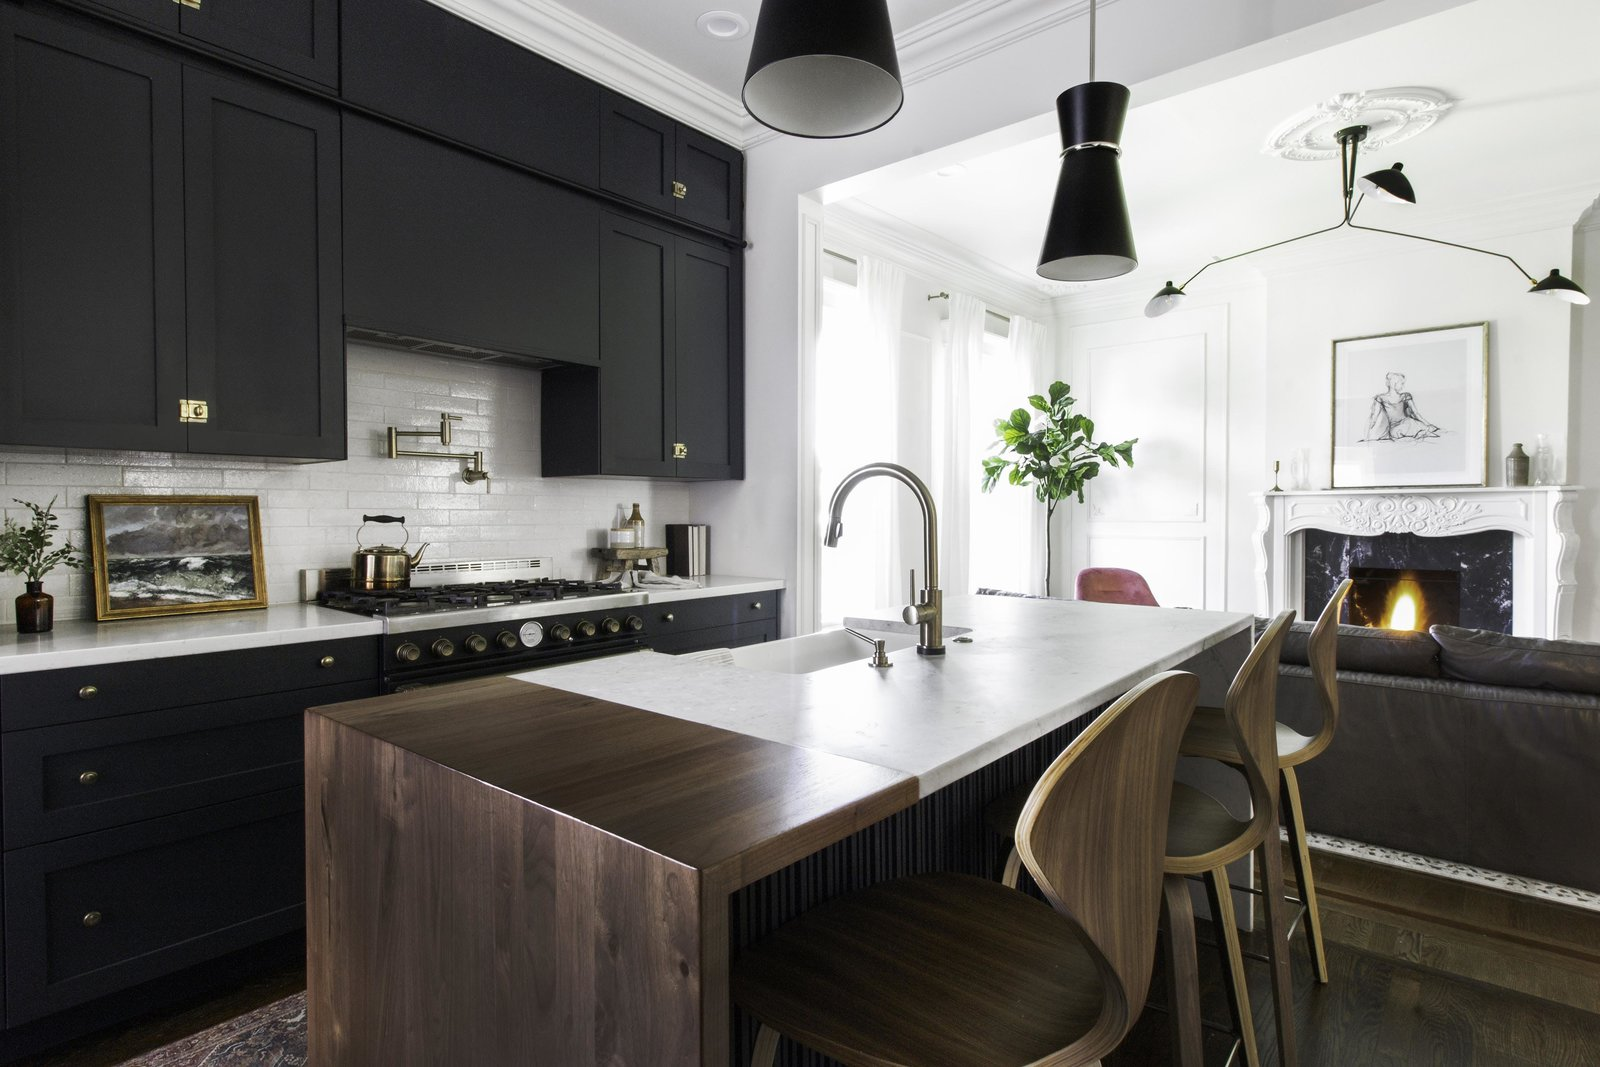 Before and After: A Victorian Kitchen Gets a Fresh Look With a Smart IKEA Hack